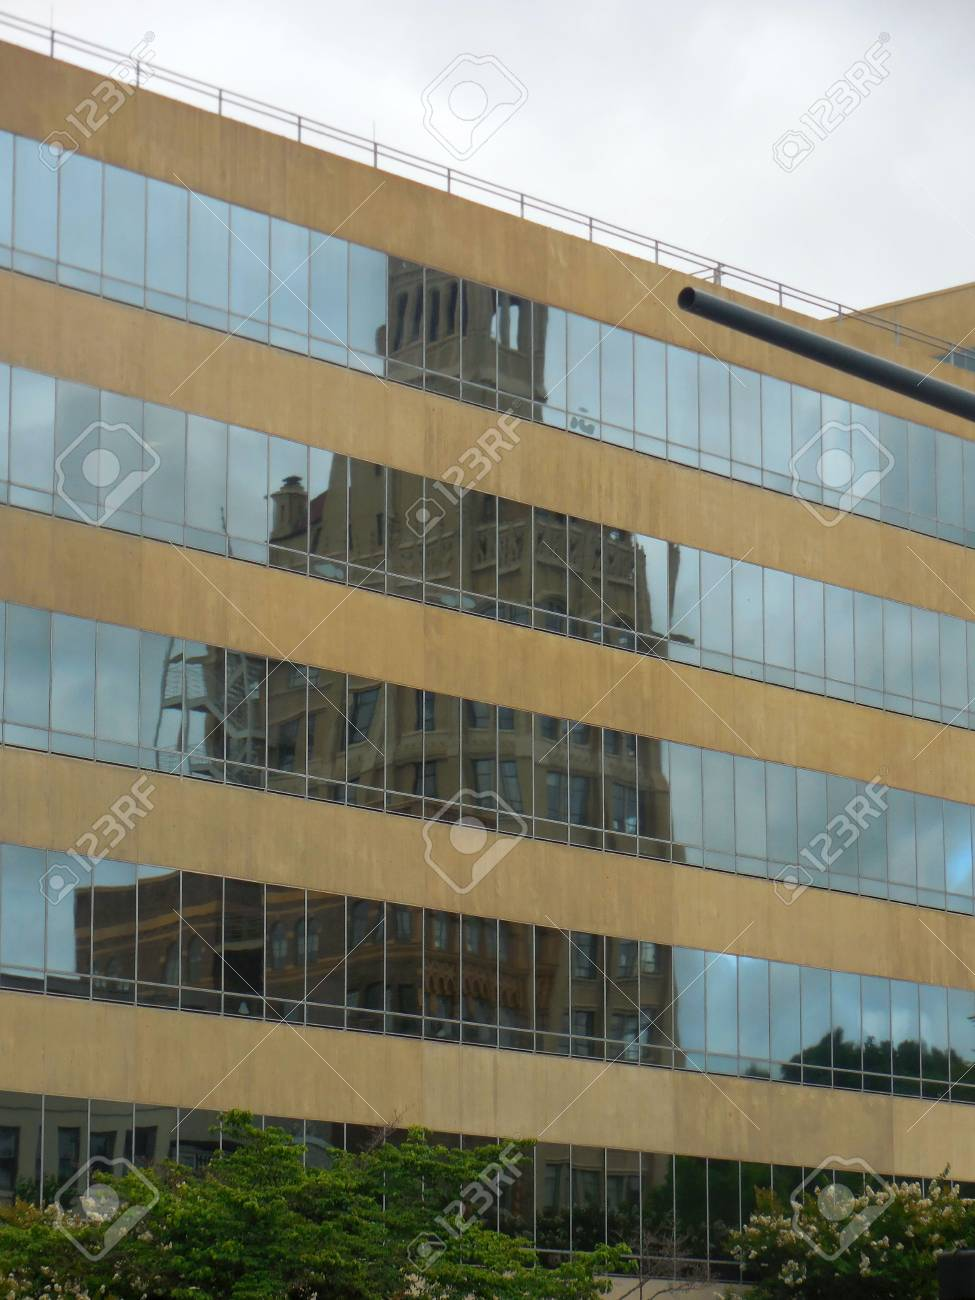 Building reflection Stock Photo - 88603377